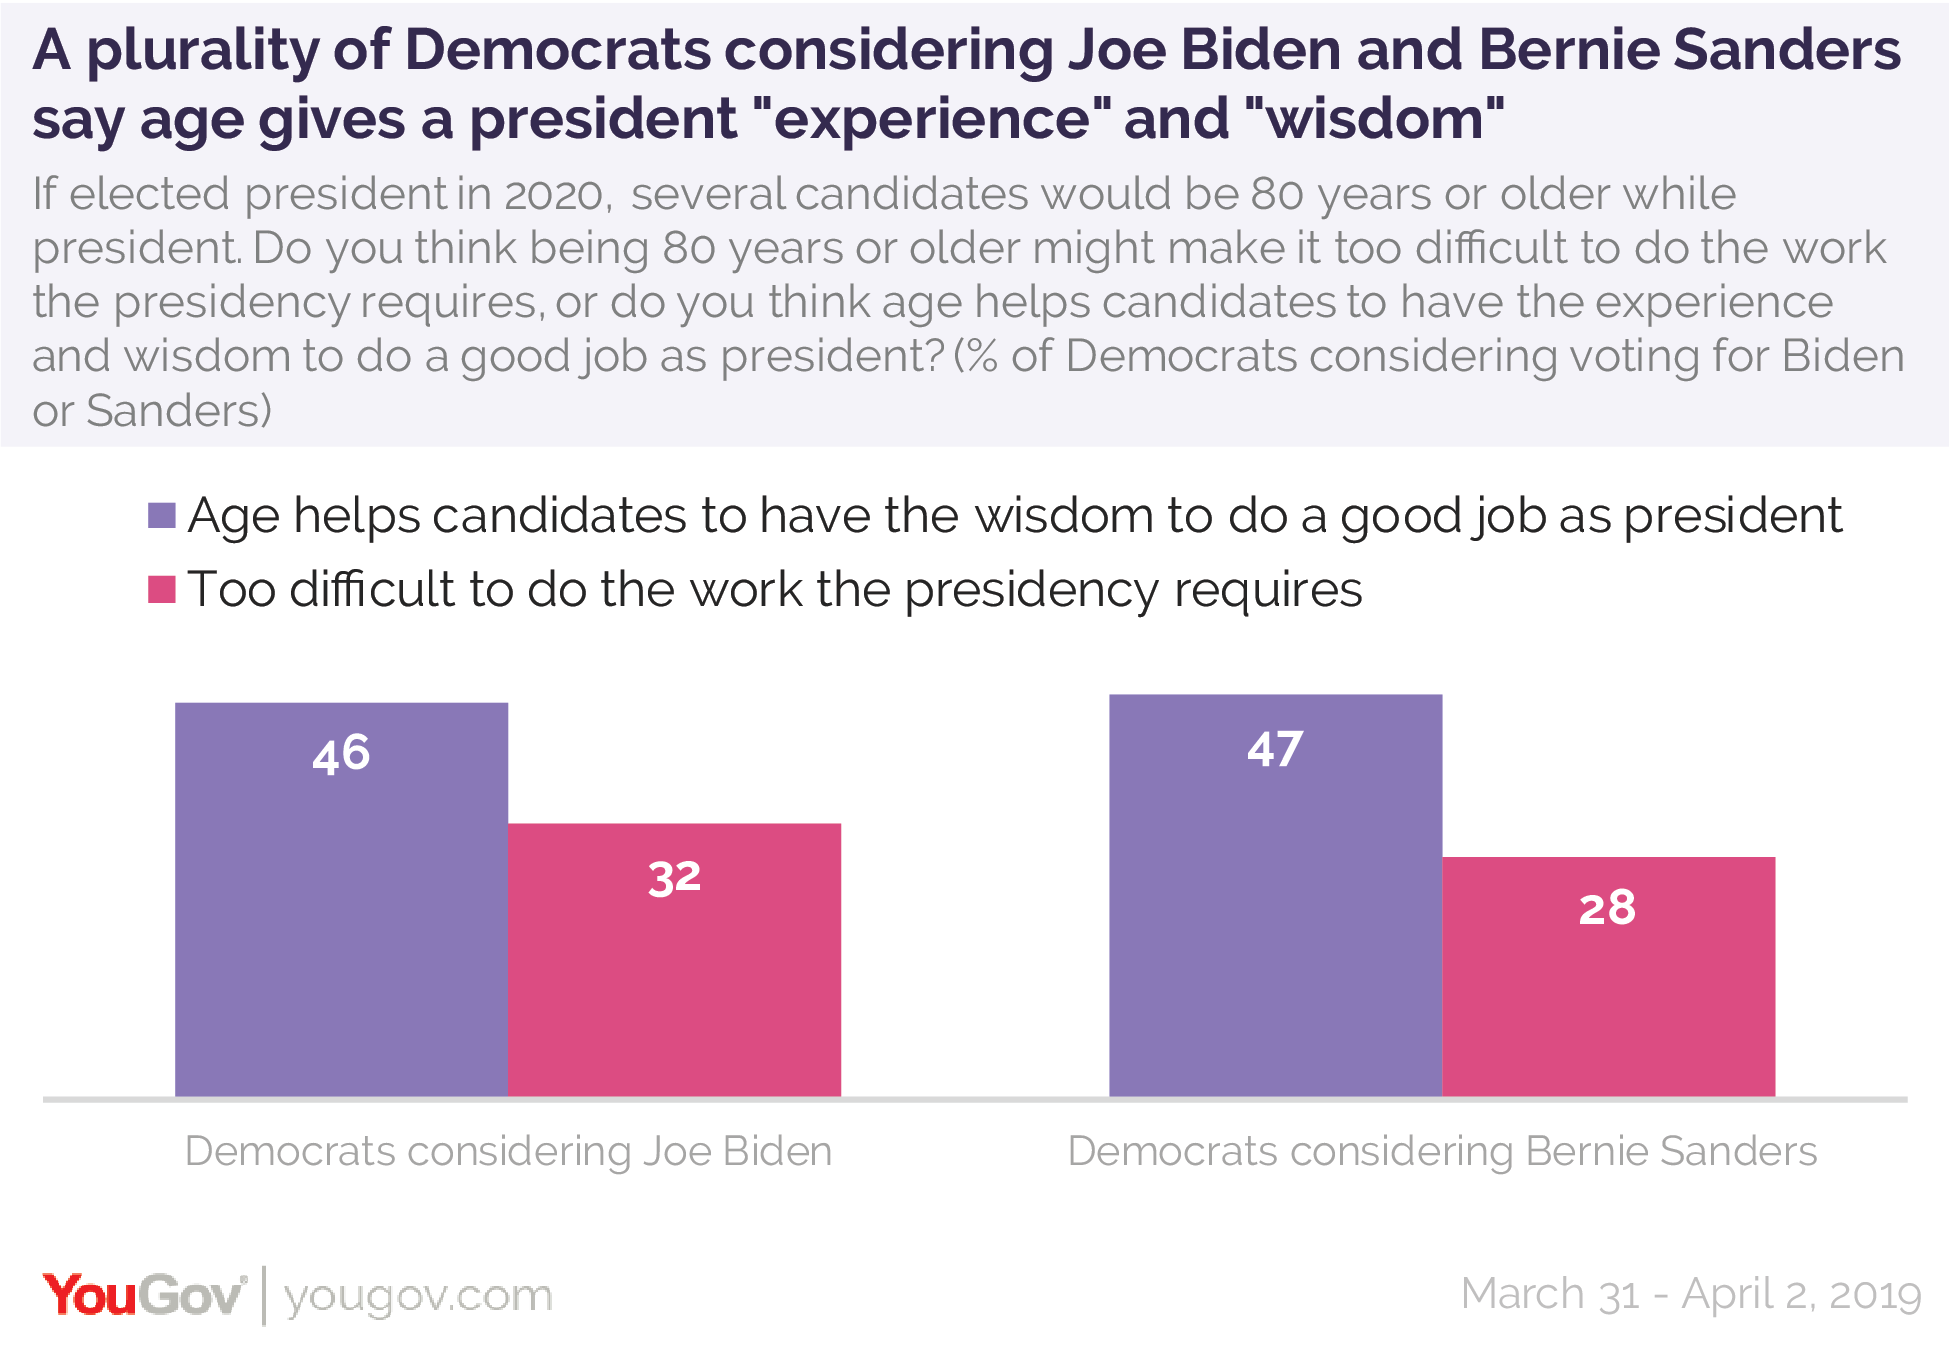 A plurality of Democrats considering Joe Biden and Bernie Sanders say age gives a president experience and wisdom